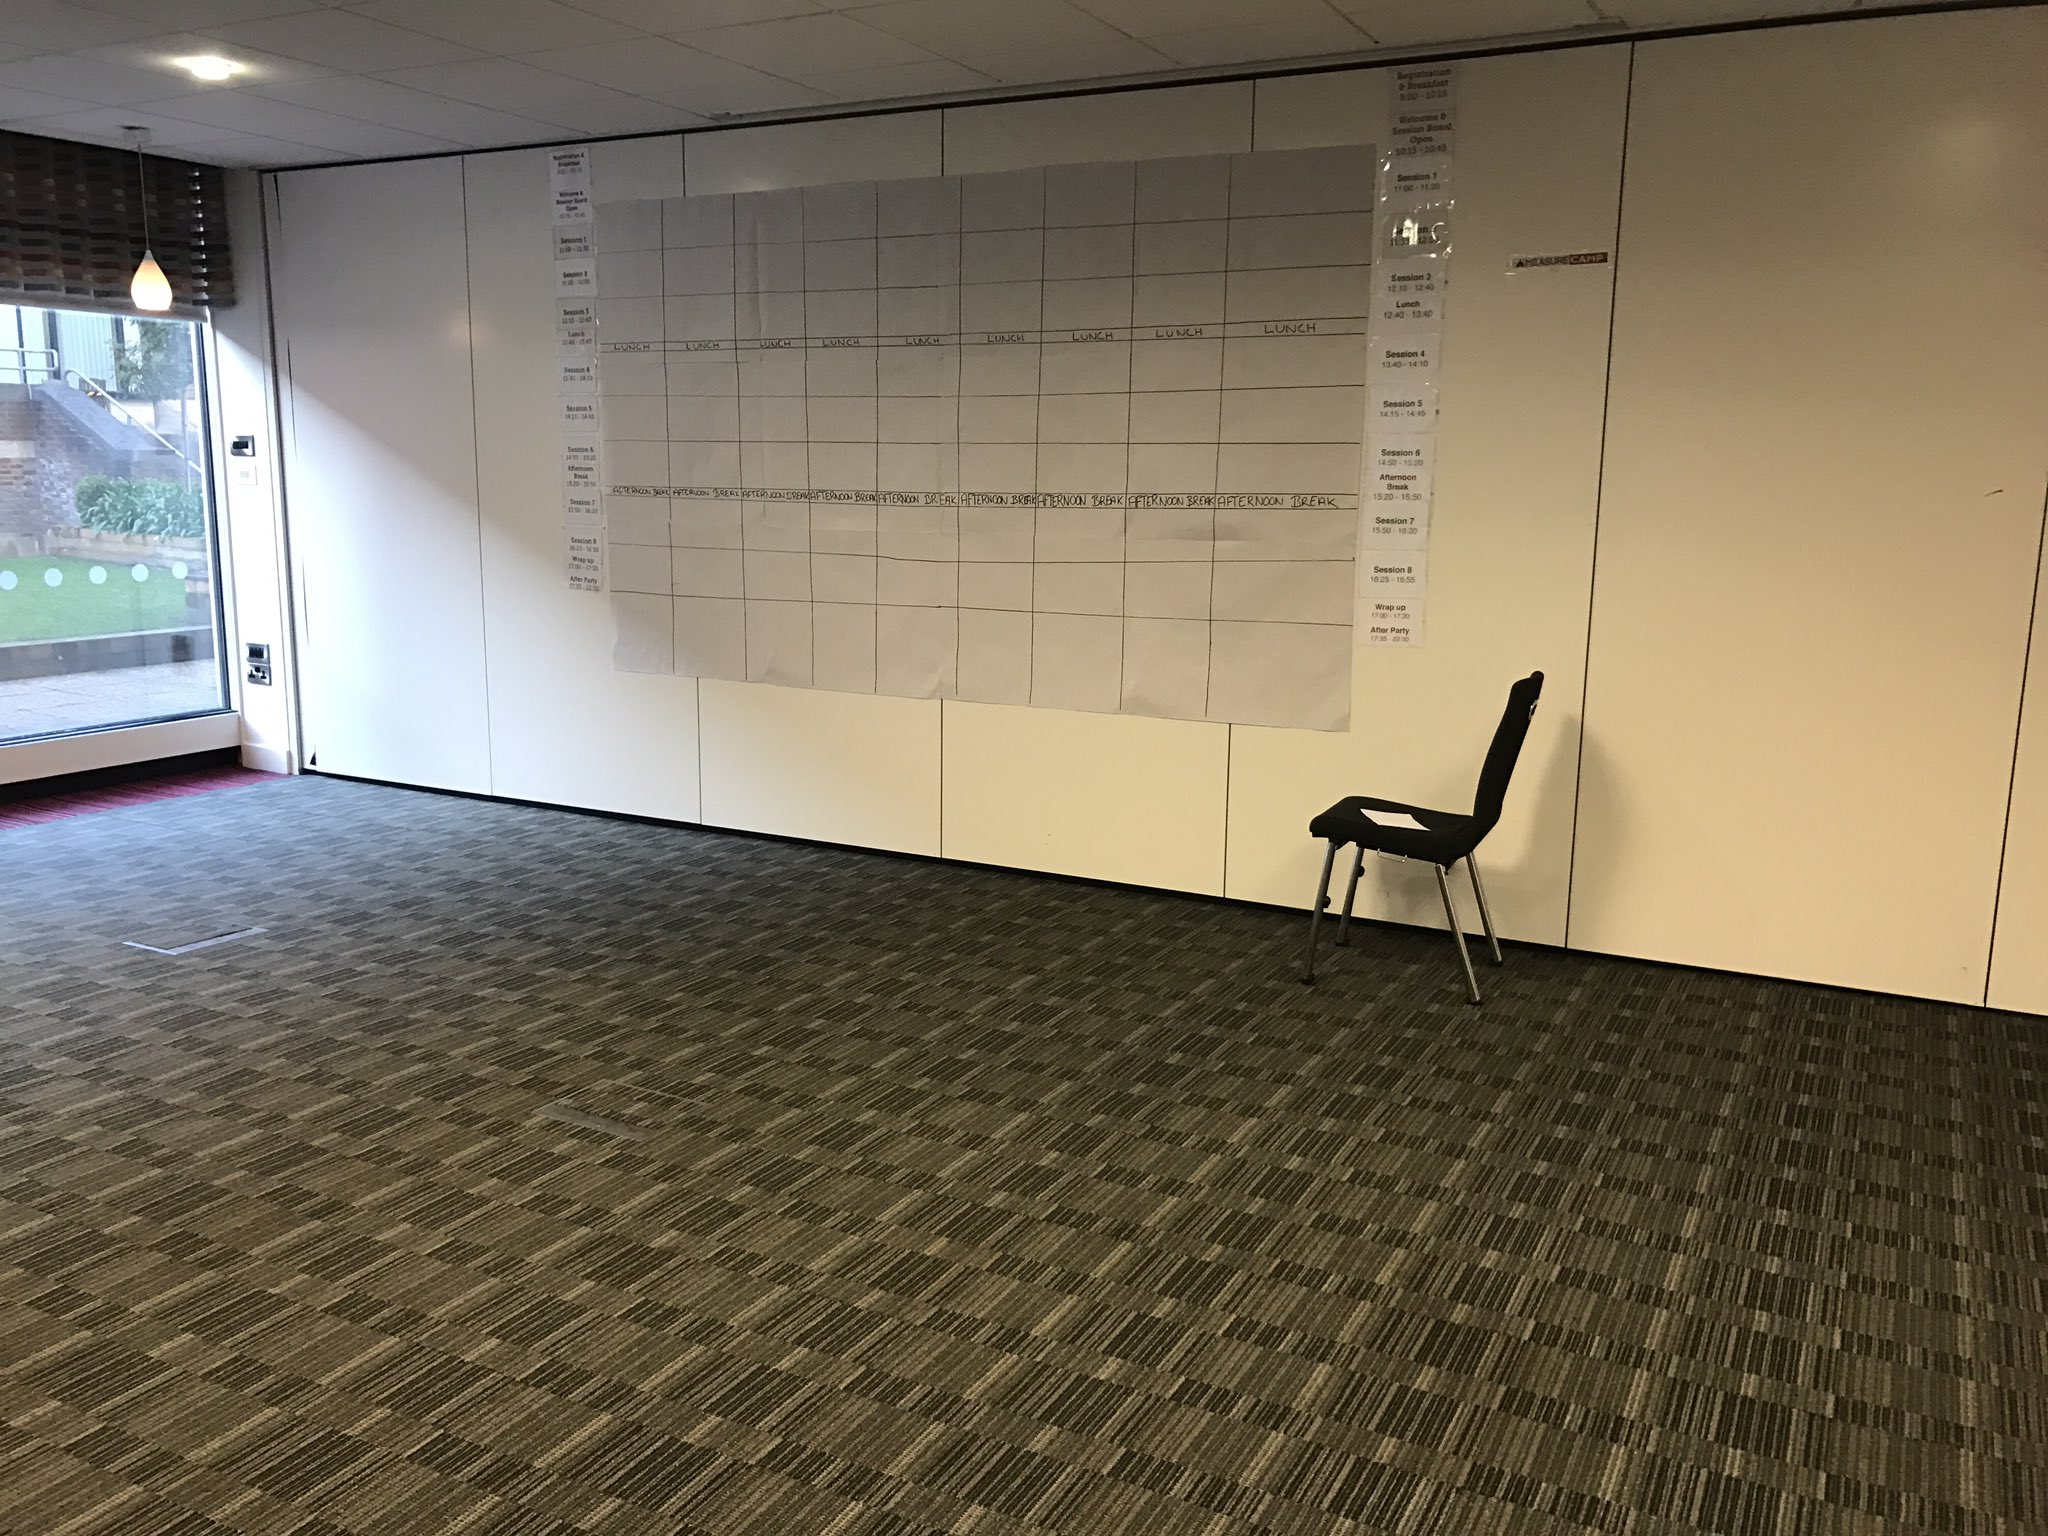 The #measurecamp session board is almost ready... Time to plan where your session is going to go!! https://t.co/pt6JdSnb9A